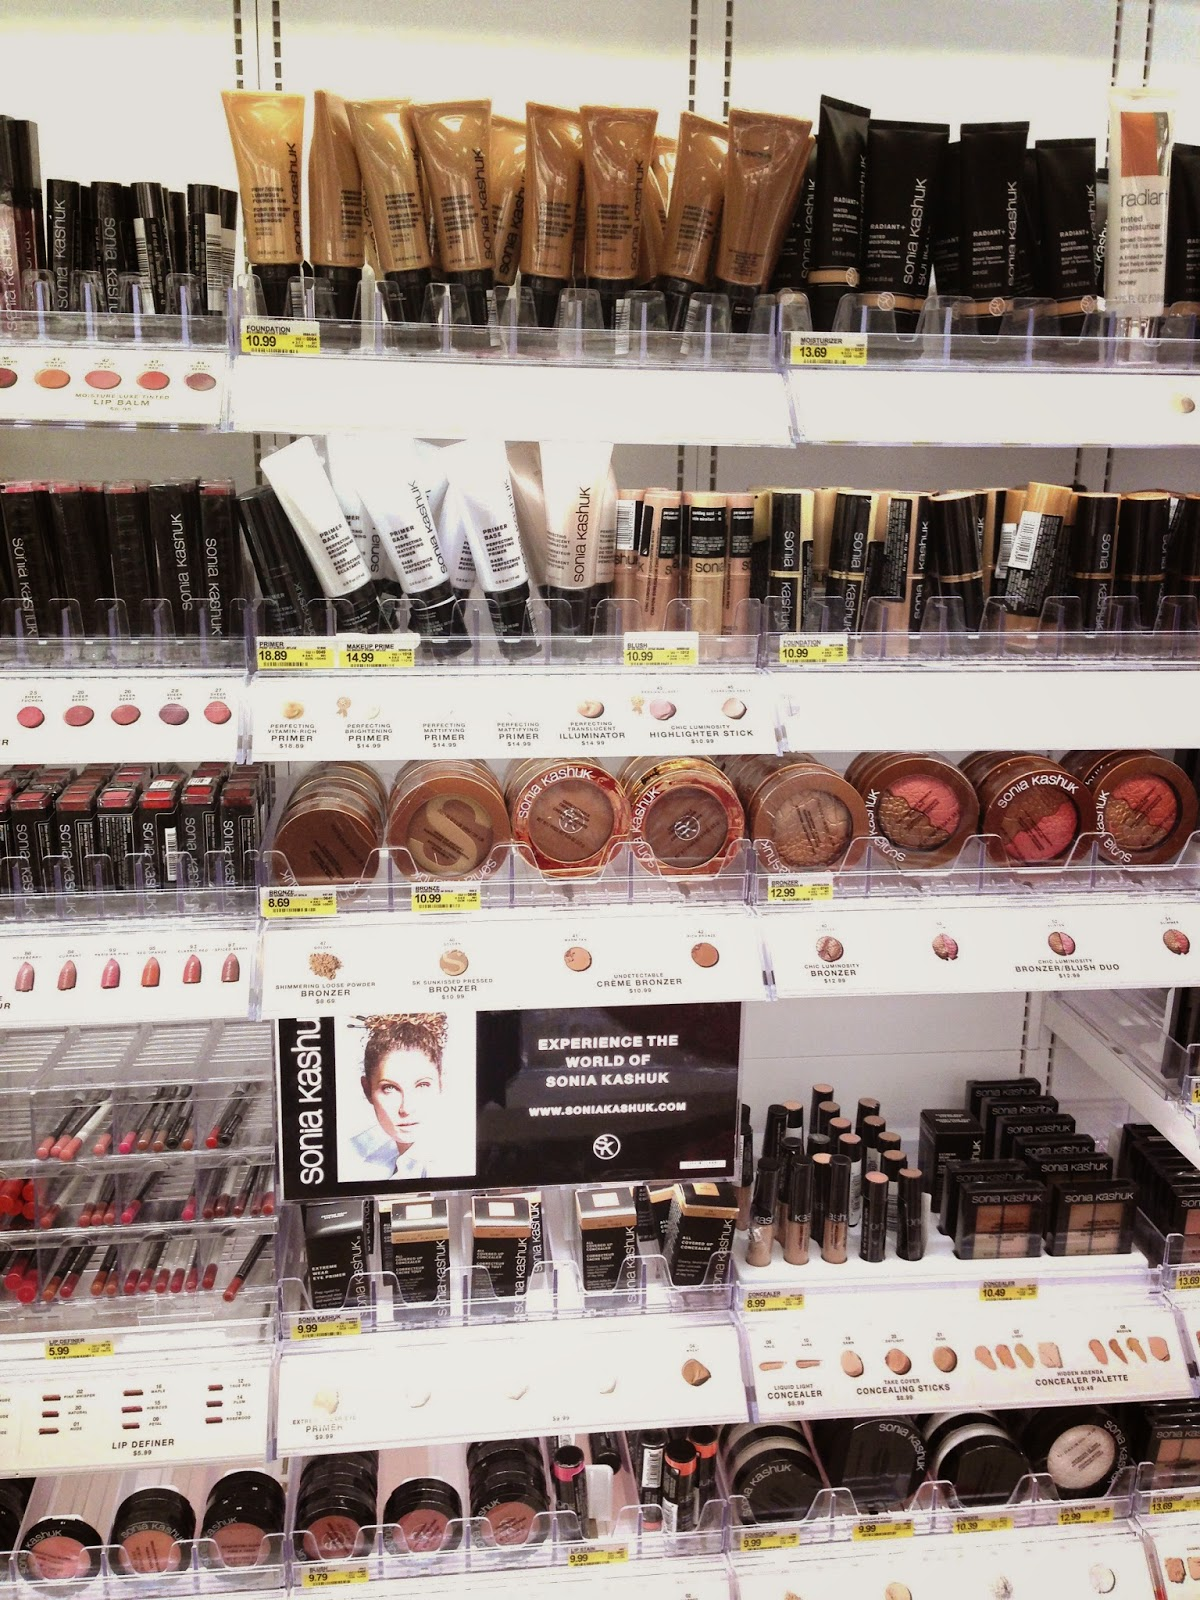 CRUELTY FREE BRANDS AT TARGET!